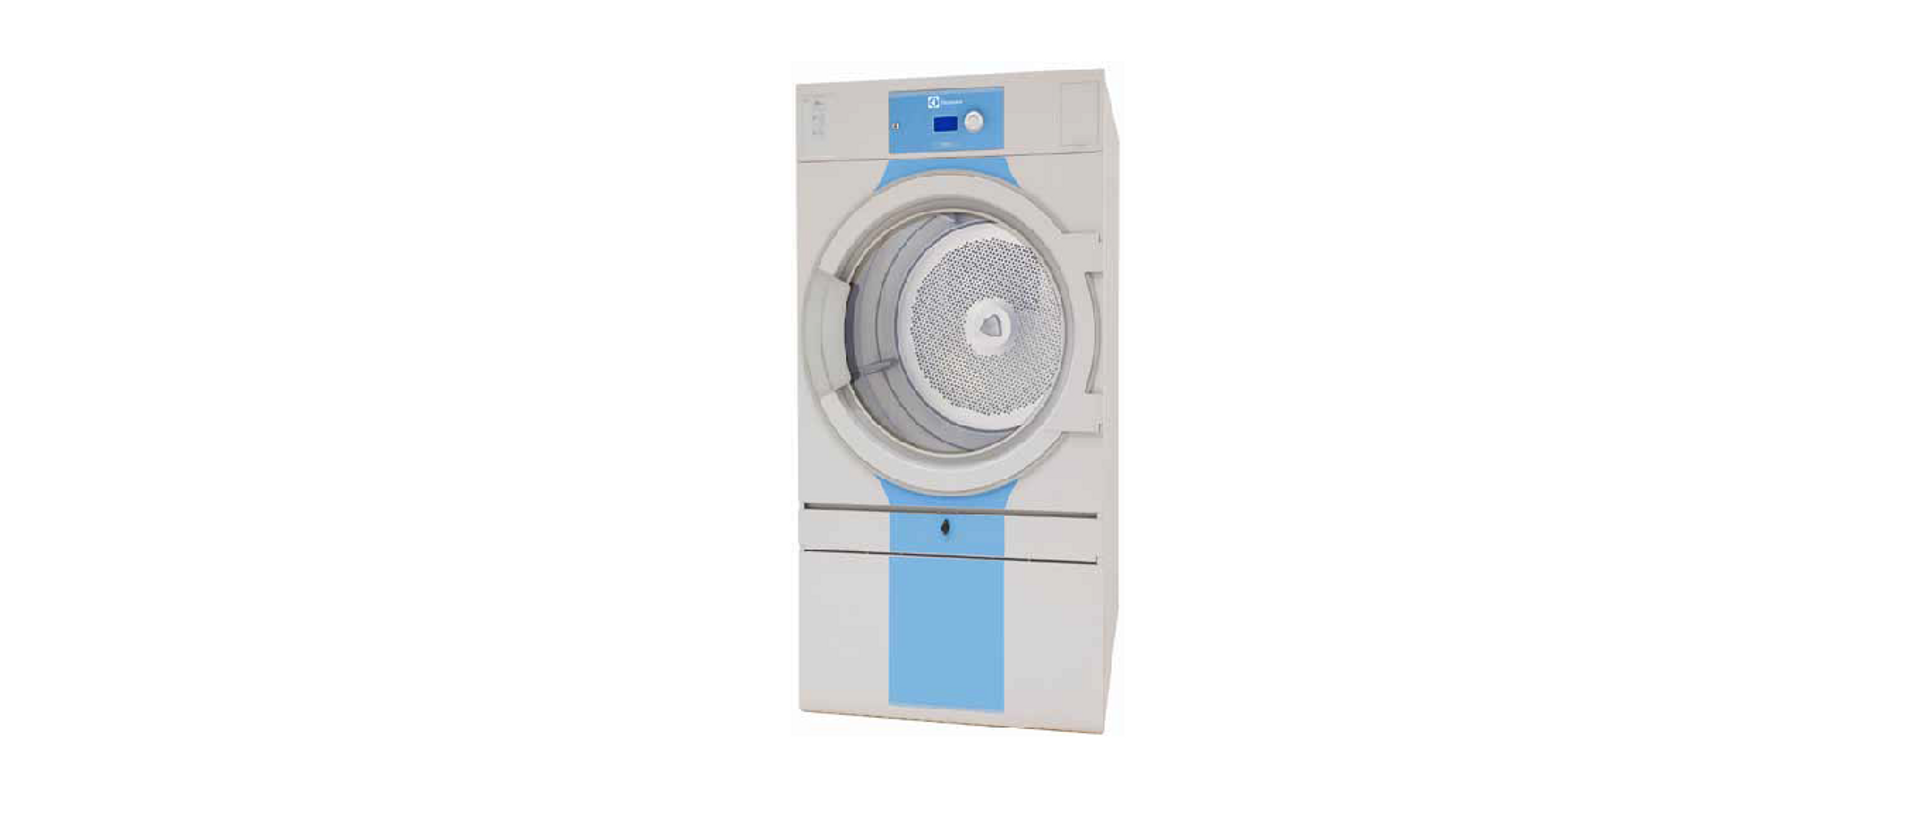 Electrolux Dryer T5550 - LV Engineering Service